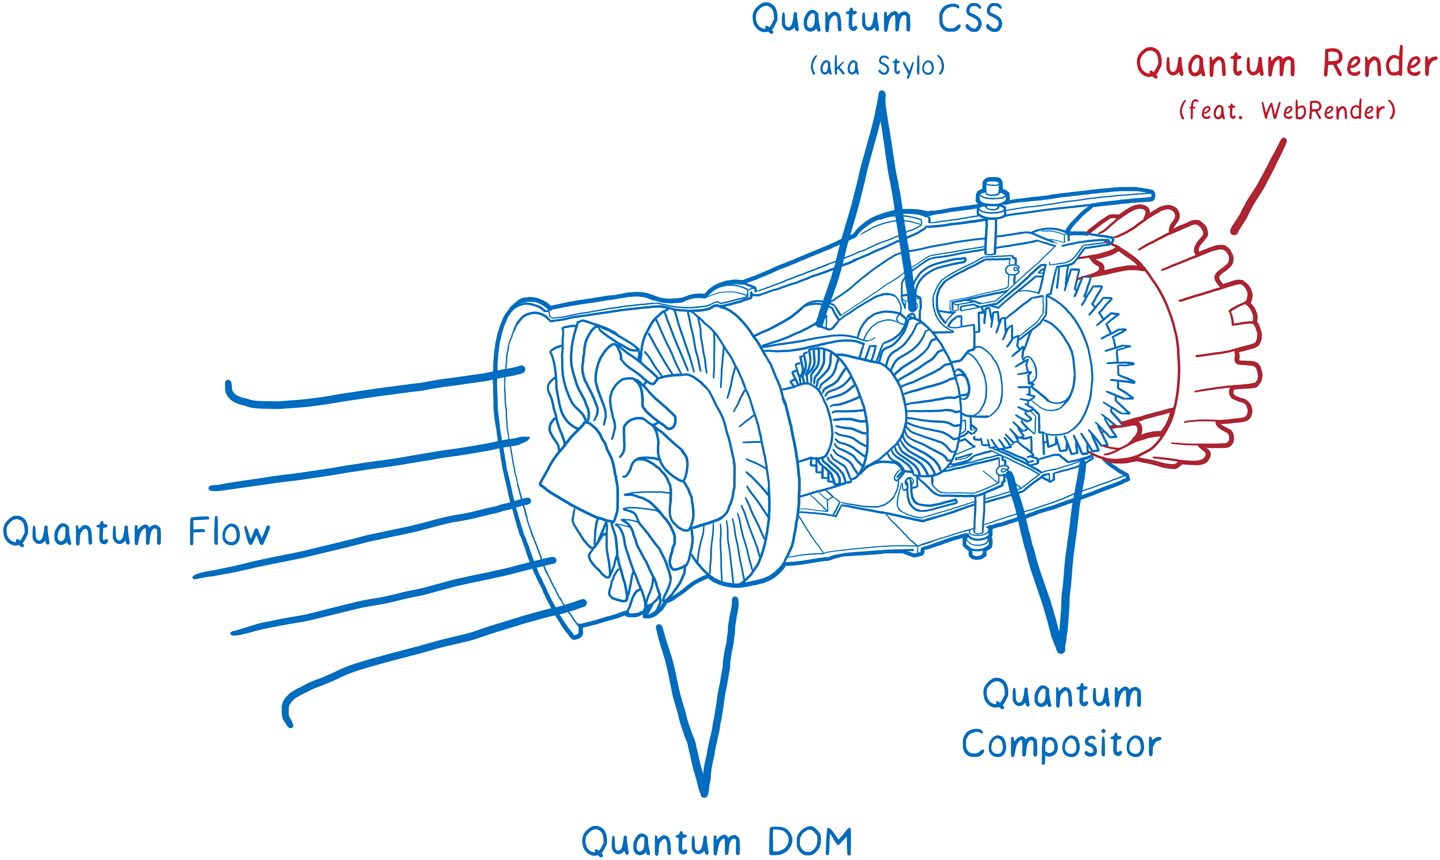 "A cut away diagram of an aircraft engine, with various parts labelled with ""Quantum Flow"", 'Quantum DOM"", ""Quantum Compositor"", ""Quantum CSS (a.k.a. Stylo)"", and ""Quantum Render (feat. WebRender)""."